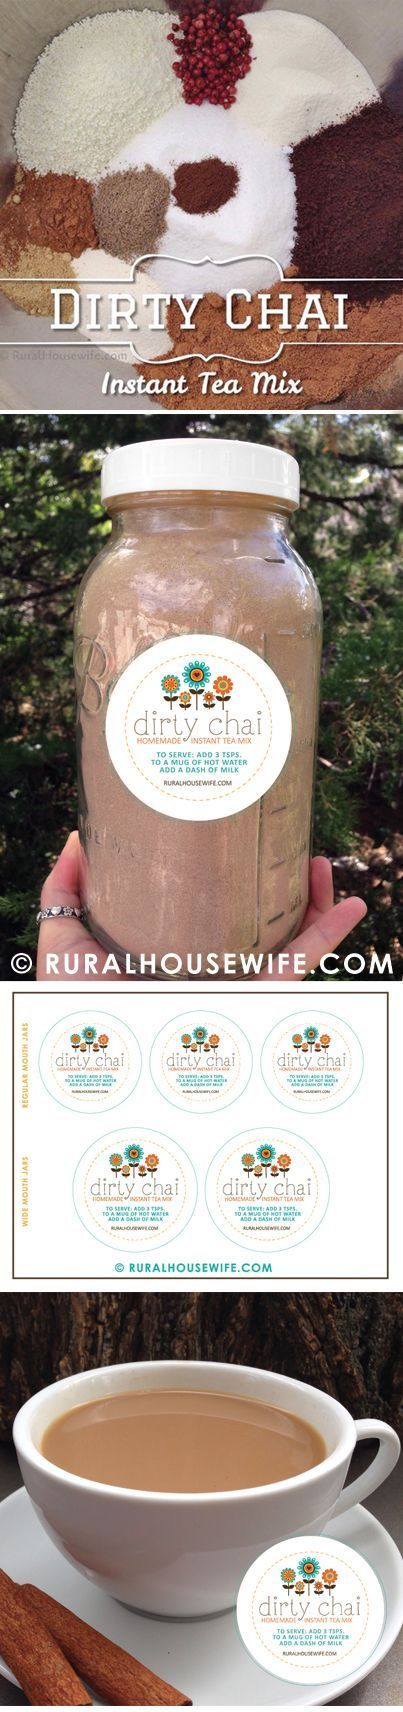 Homemade Dirty Chai Instant Tea Mix - Great for Gifts! Plus FREE Jar Labels Download :: Rural Housewife